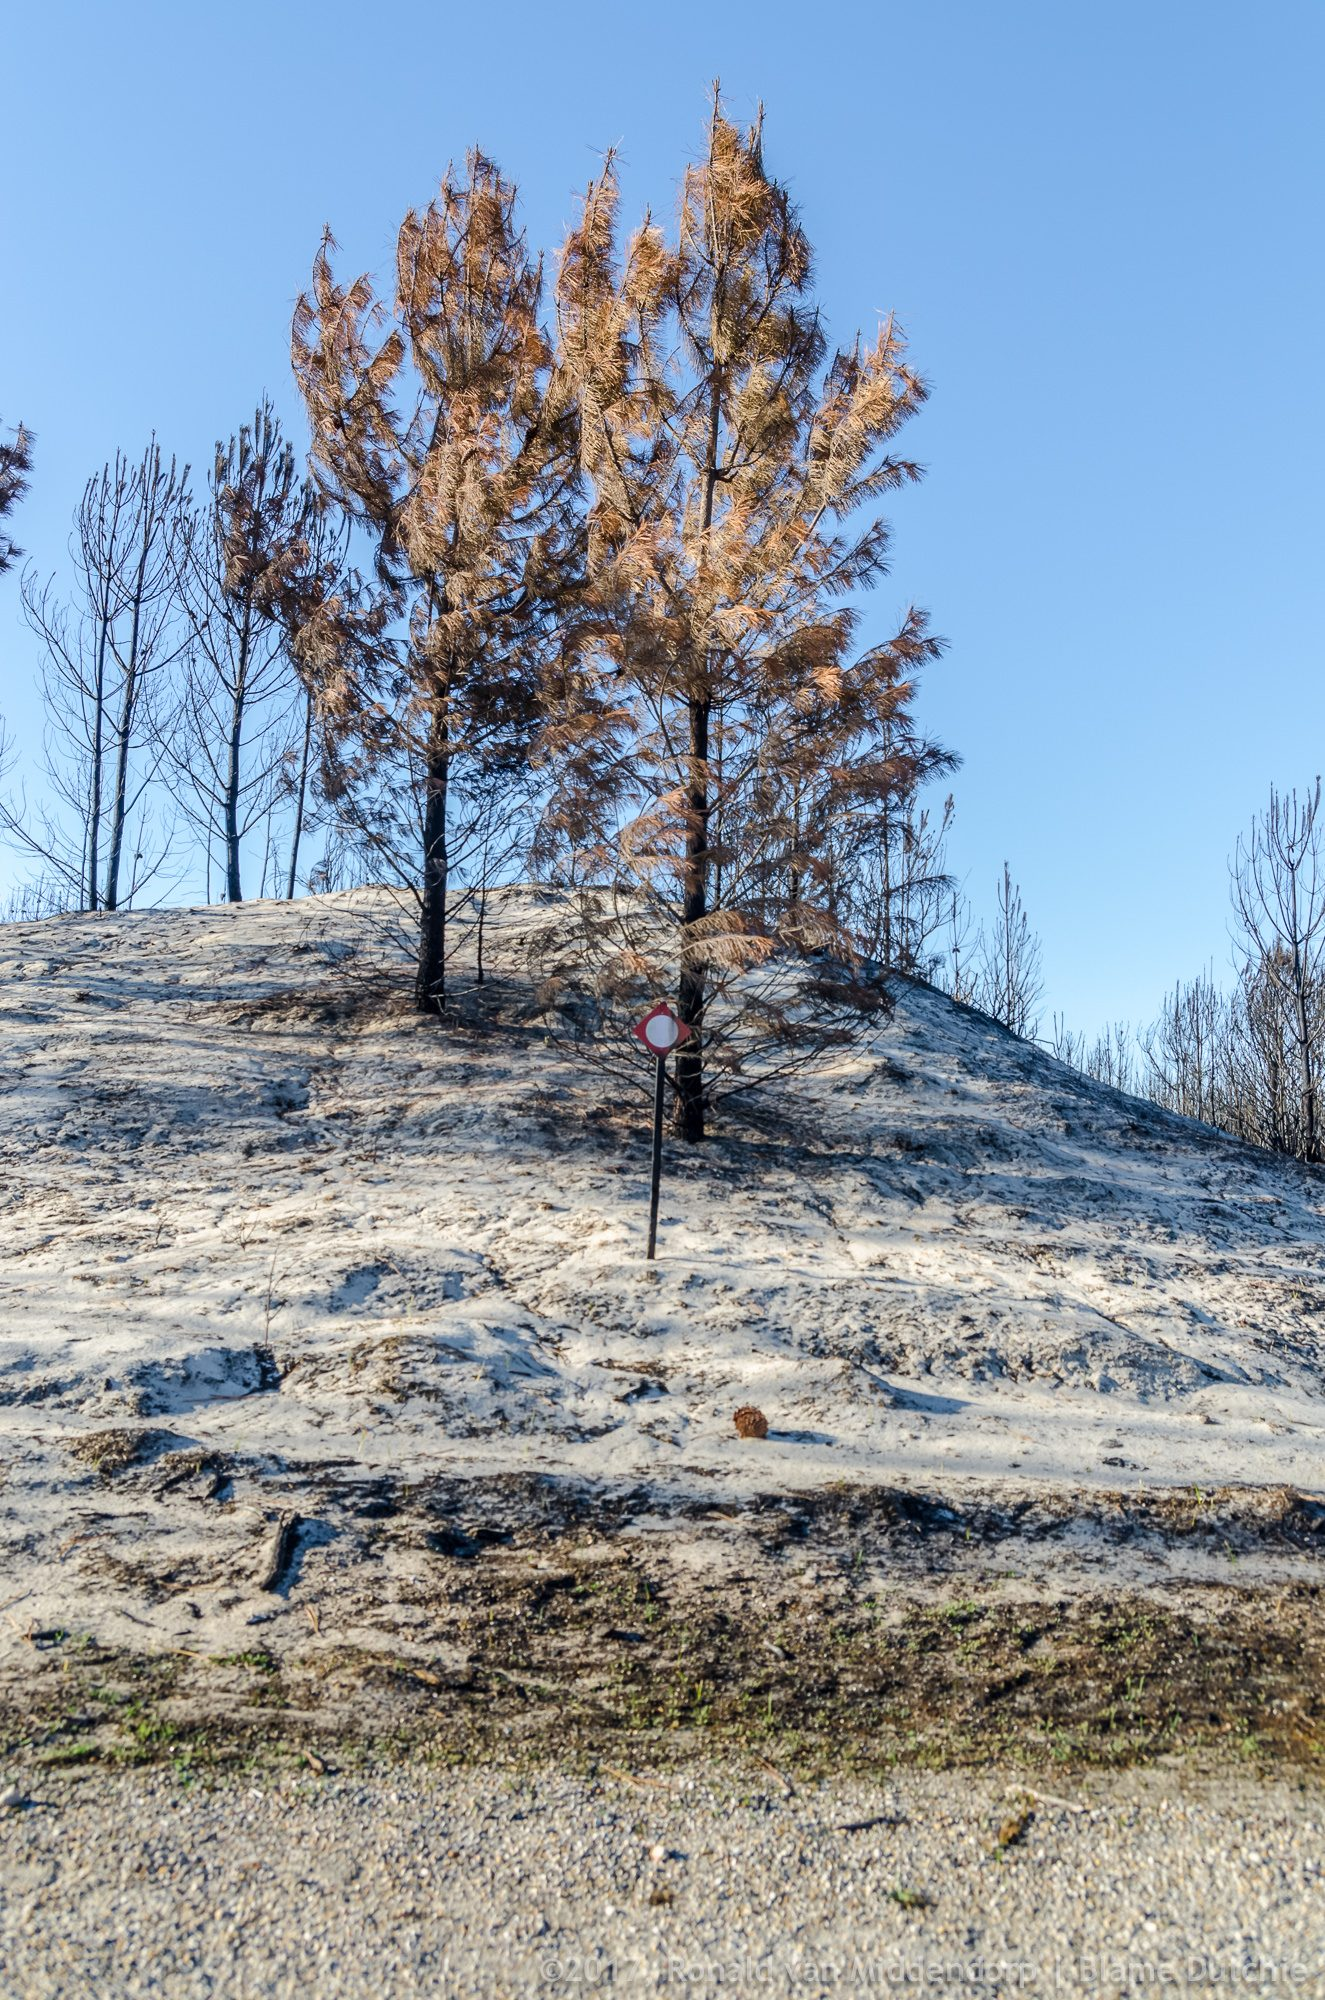 photo: after the fires